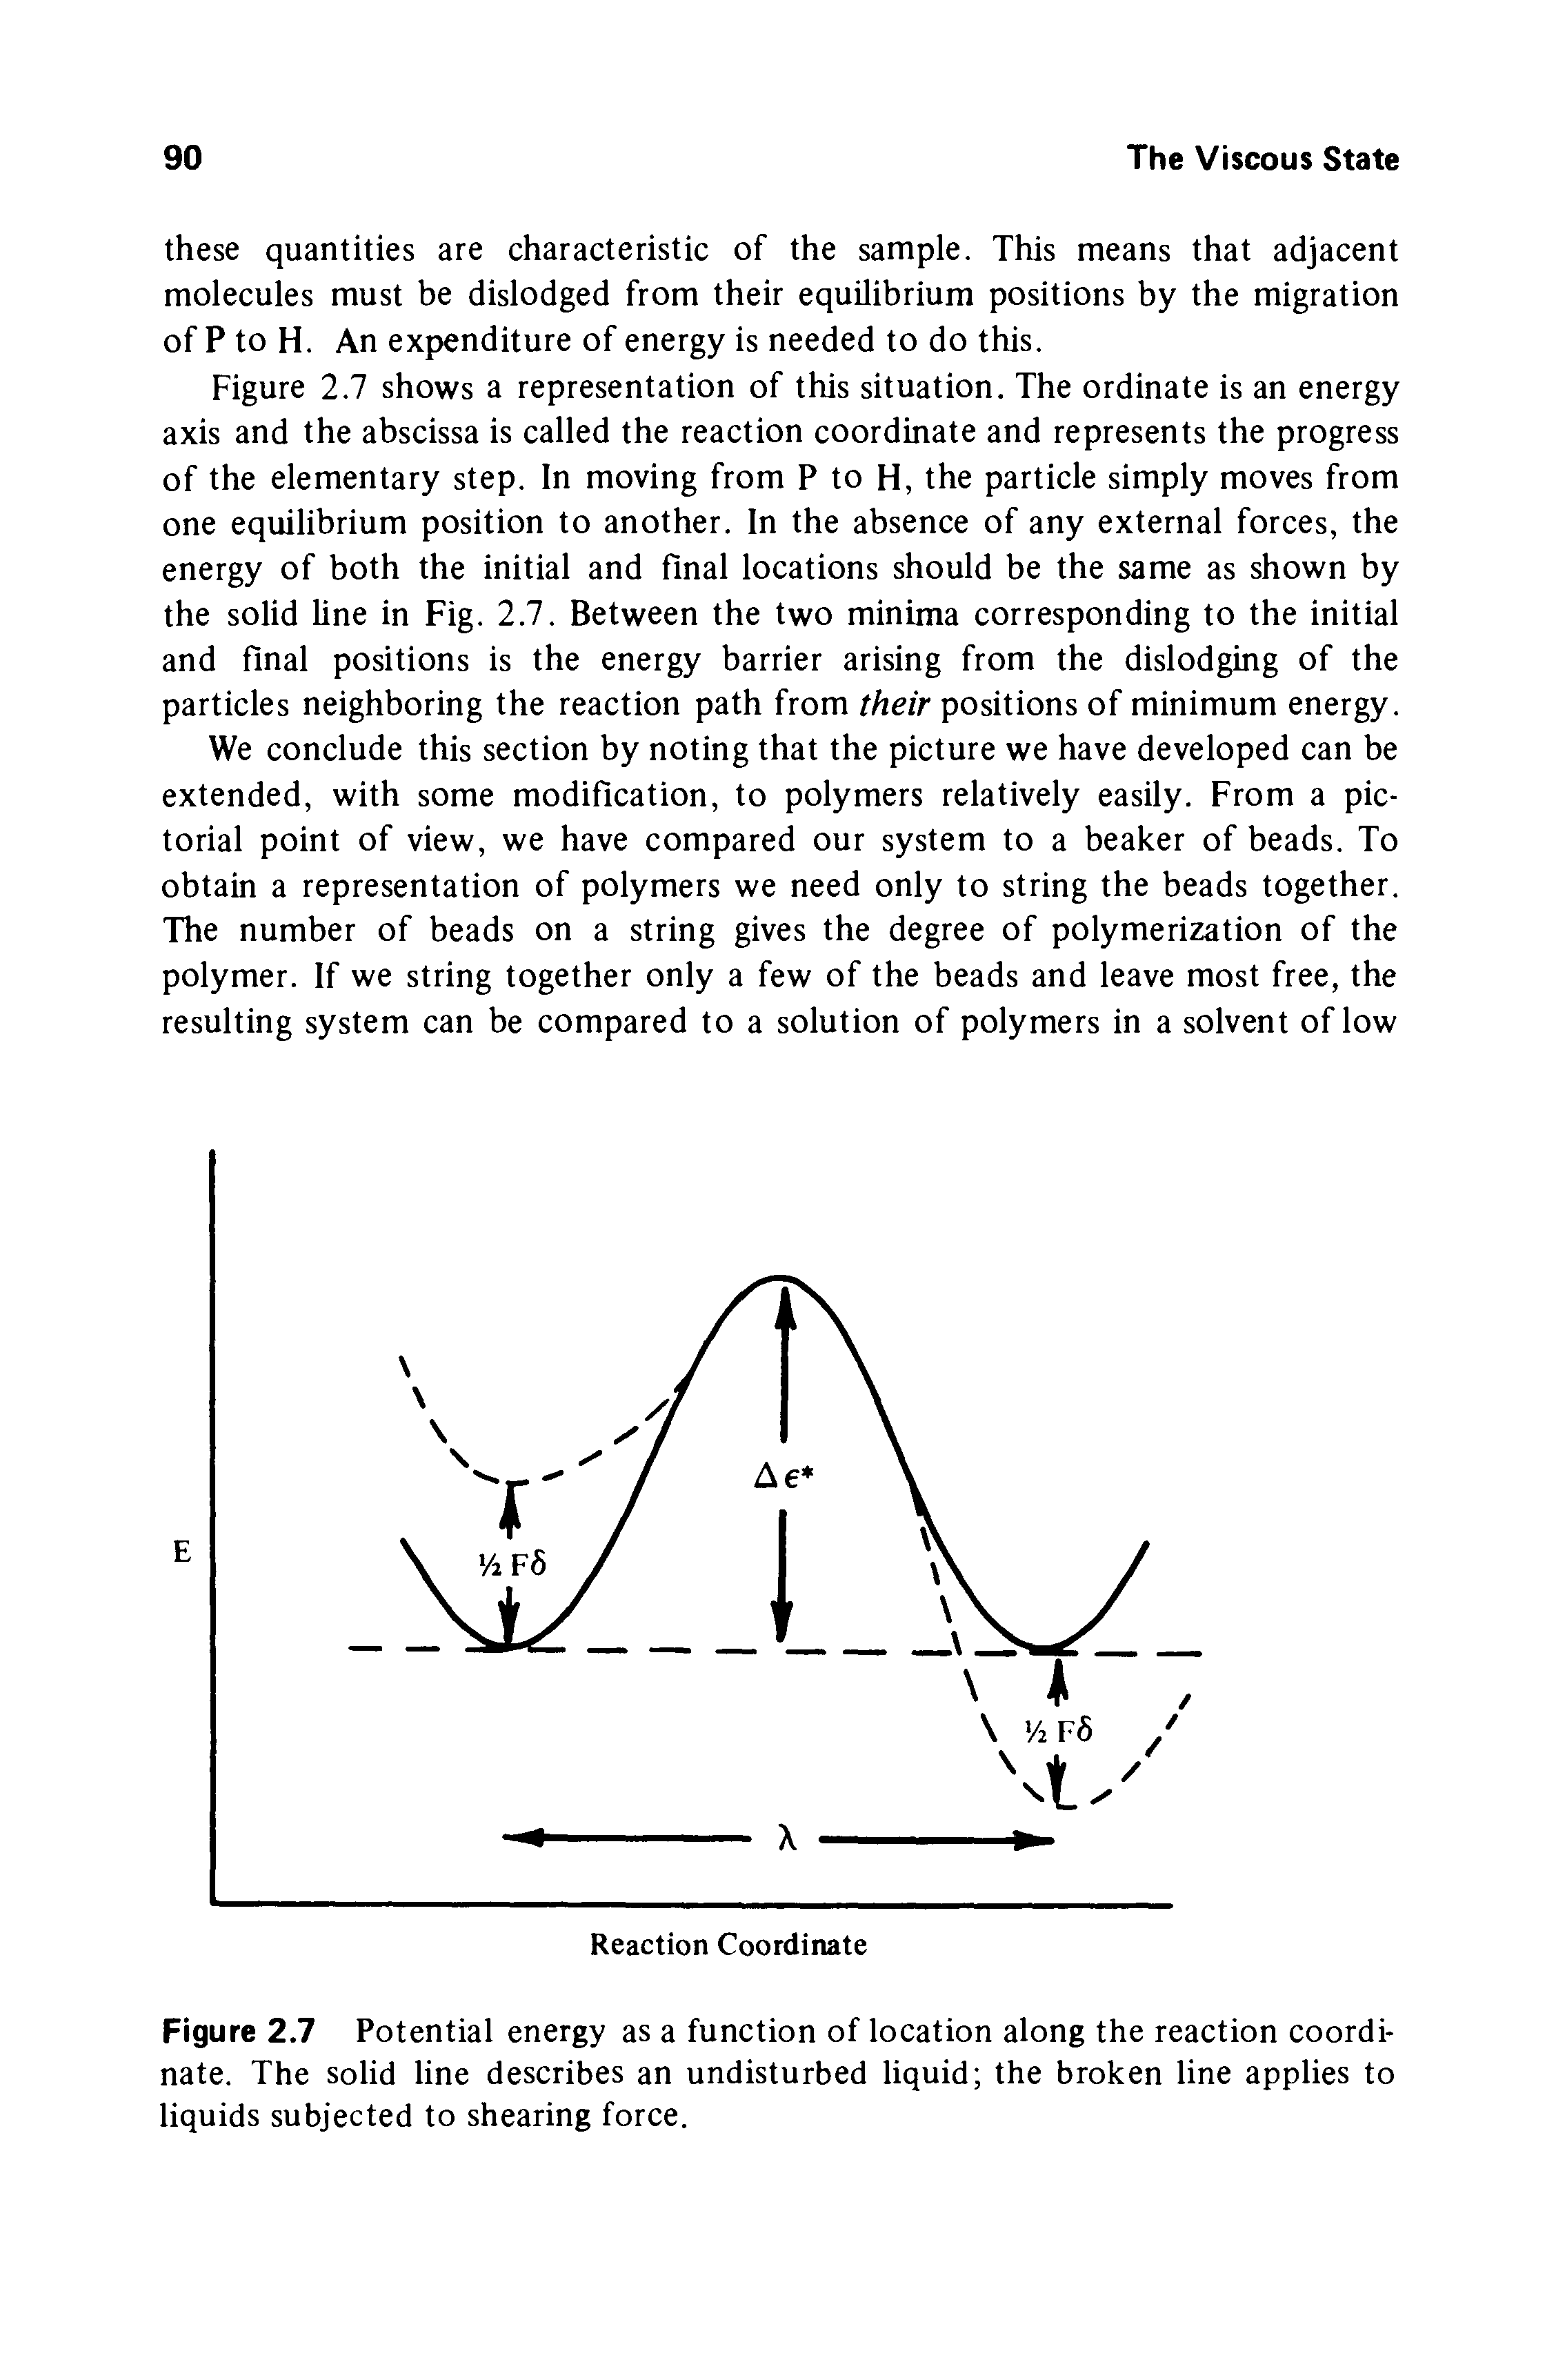 "Figure 2.7 <a href=""/info/potential_energy"">Potential energy</a> as a function of location along the <a href=""/info/reaction_coordinate"">reaction coordinate</a>. The <a href=""/info/solid_lines"">solid line</a> describes an undisturbed liquid the broken line applies to <a href=""/info/liquid_subject"">liquids subjected</a> to shearing force."